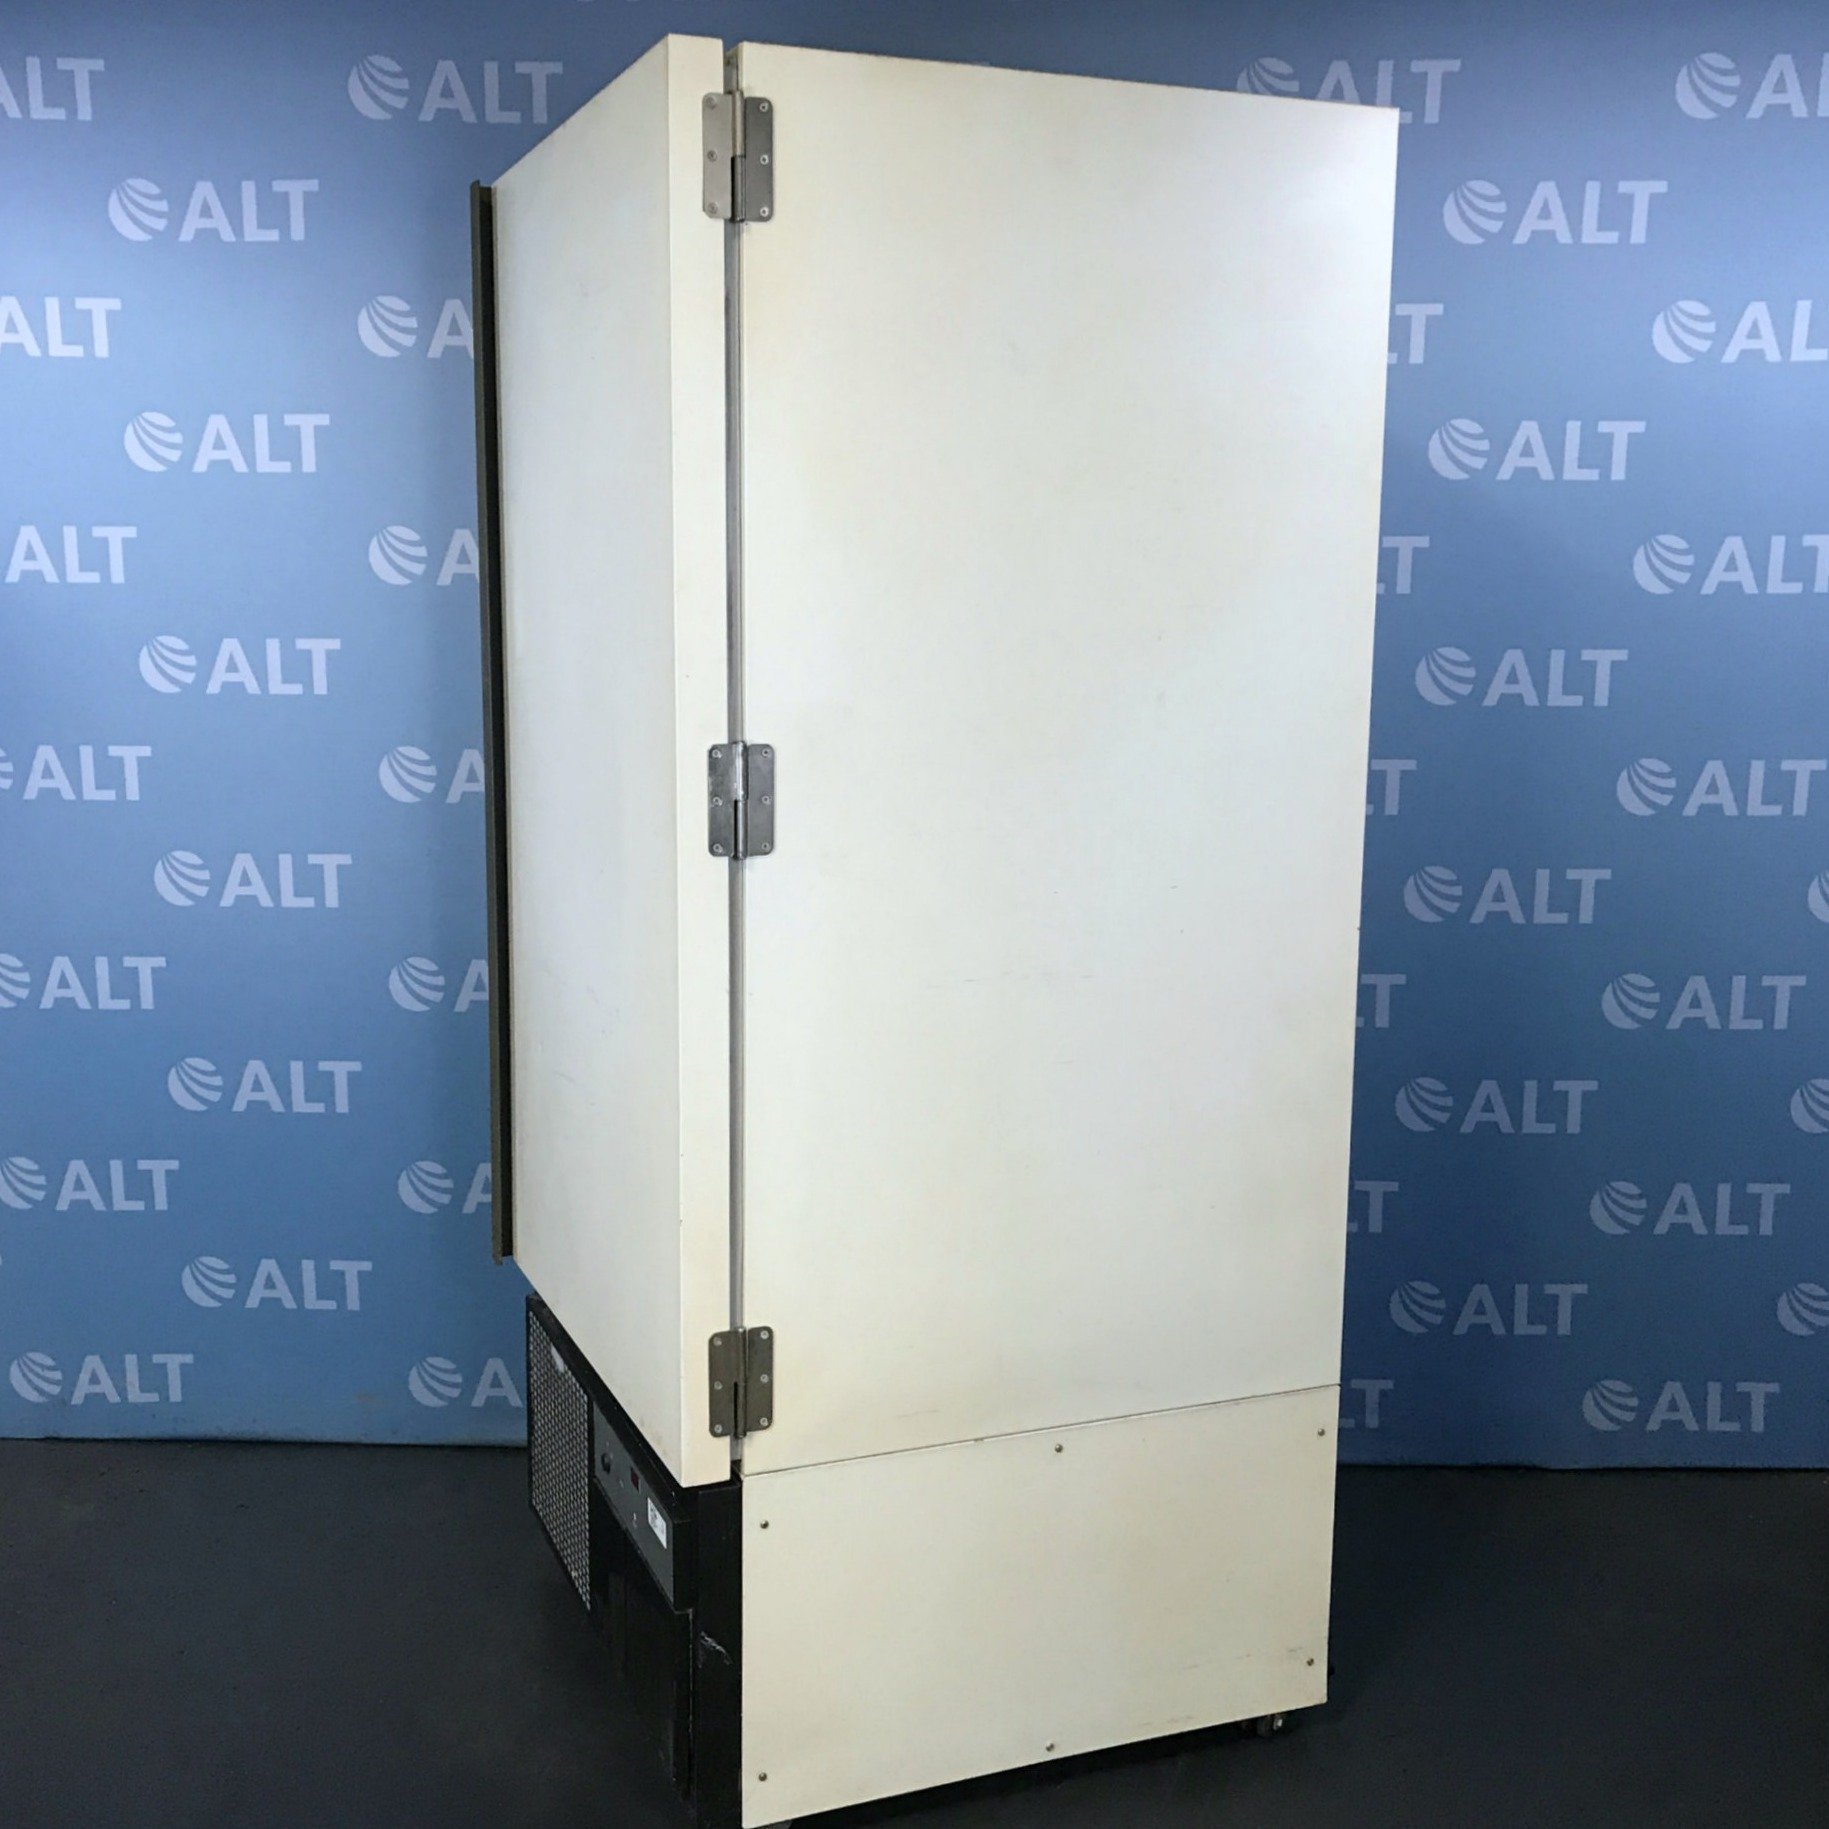 Forma Scientific A4017 -40 Ultra-Low Freezer Image